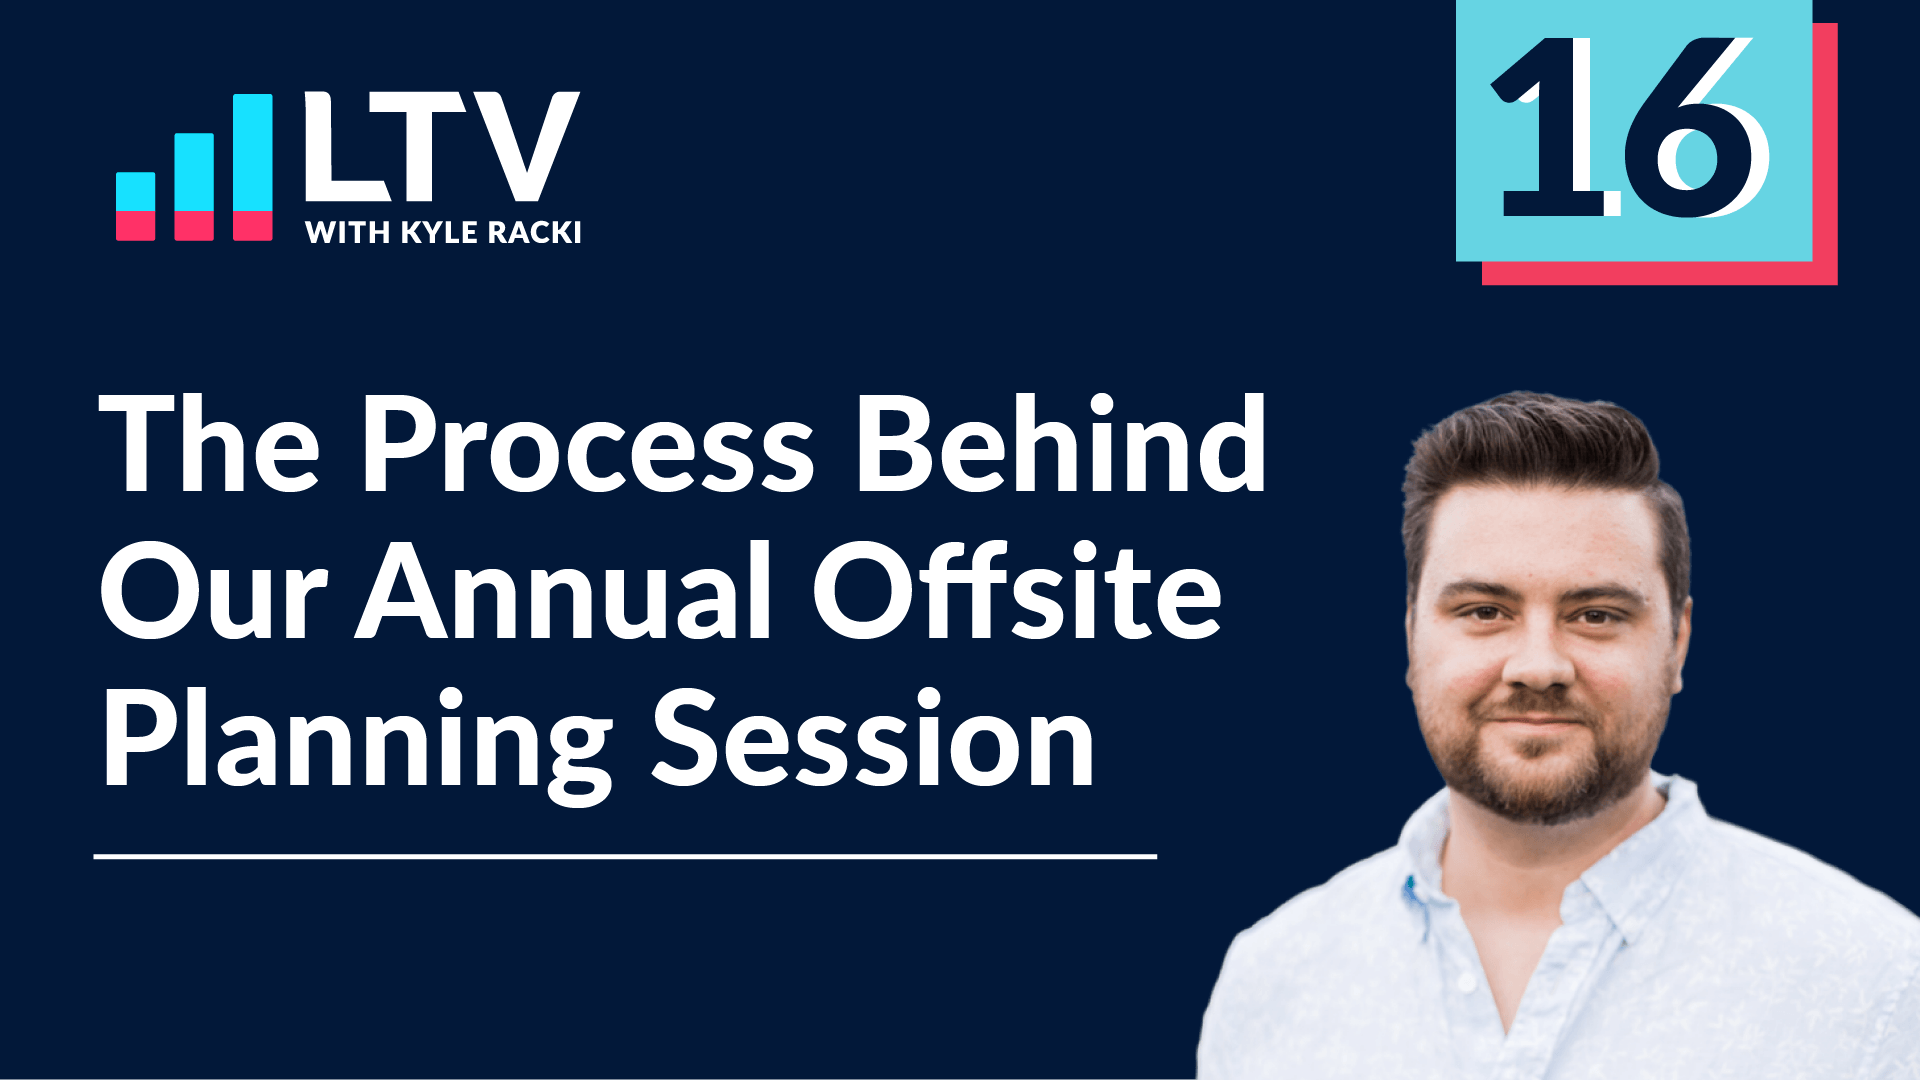 LTV Podcast Episode 16: The Process Behind Our Annual Offsite Planning Session